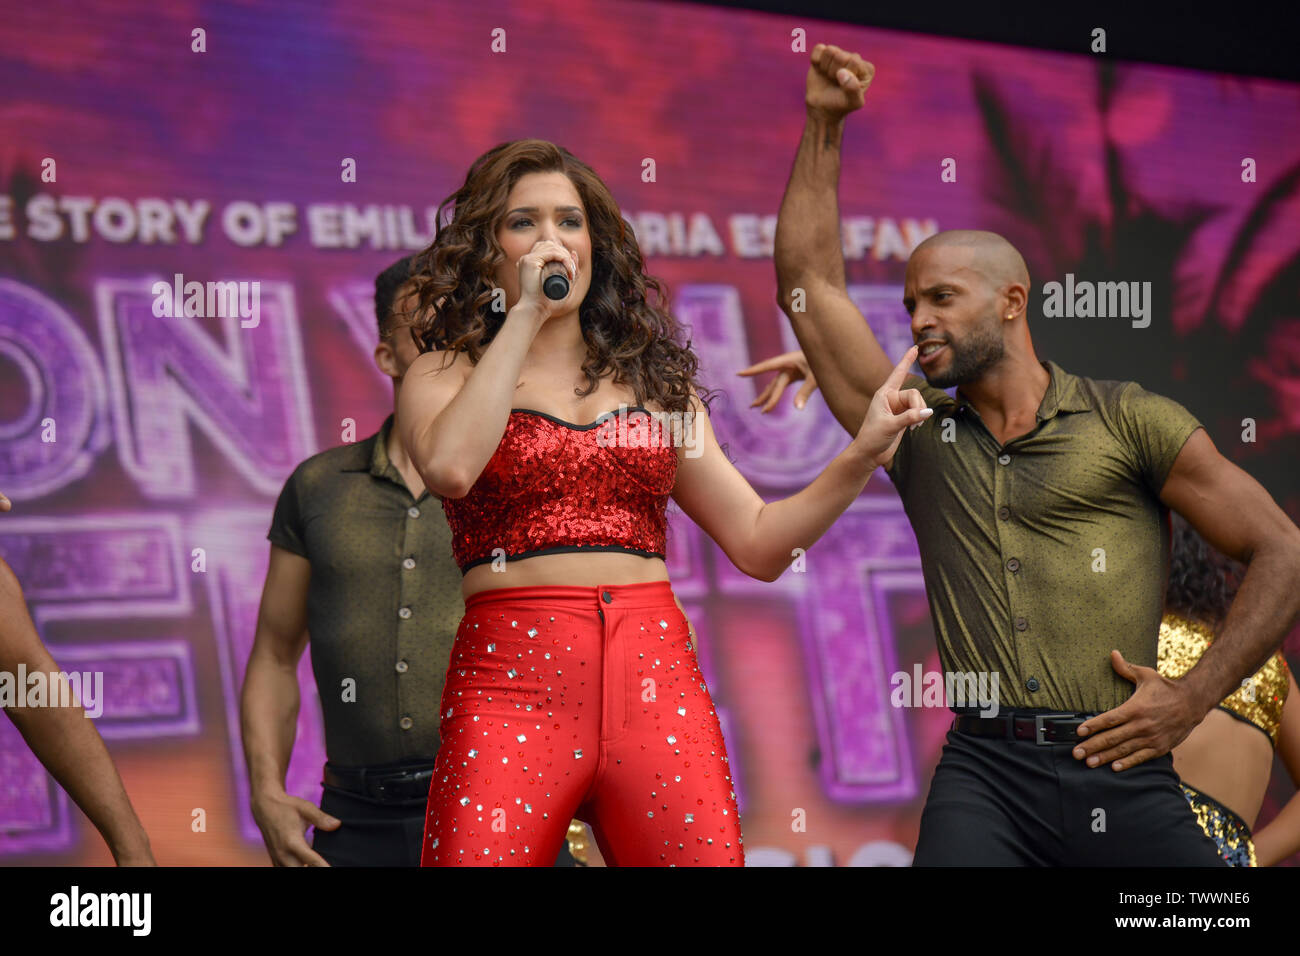 London, UK. 23rd June, 2019. On Your Feet!, by Alexander Dinelaris performs at West End Live 2019 - Day 2 in Trafalgar Square, on 23 June 2019, London, UK. Credit: Picture Capital/Alamy Live News - Stock Image